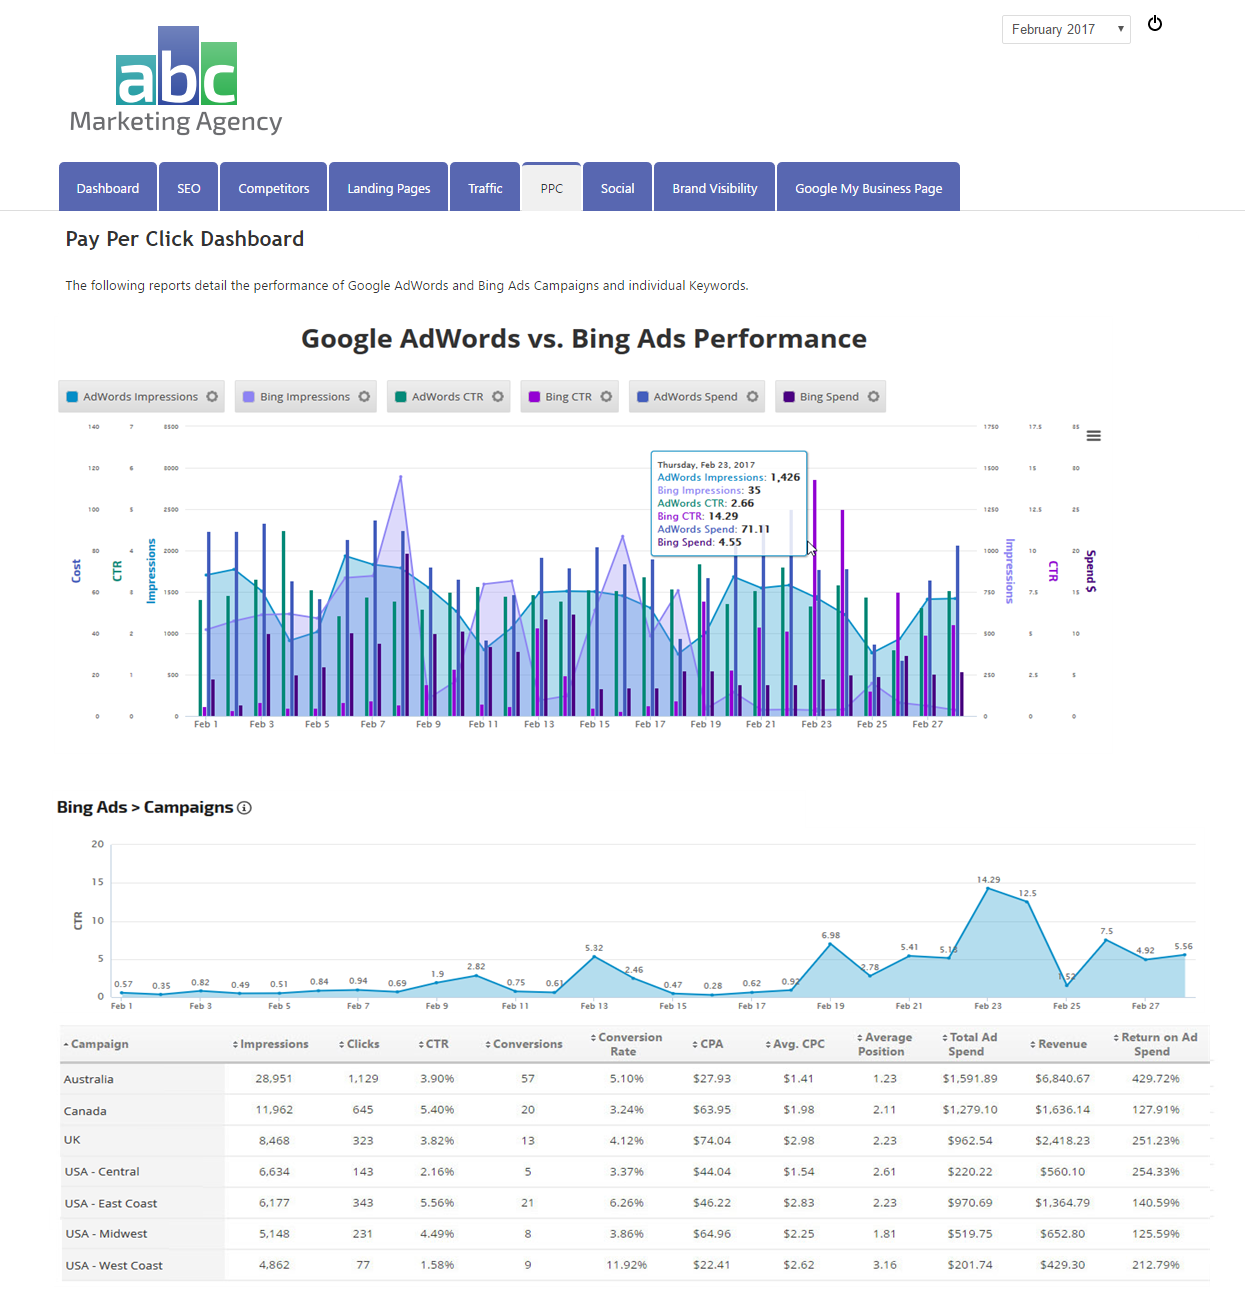 Bing Ads Data Inside the Marketing Dashboard